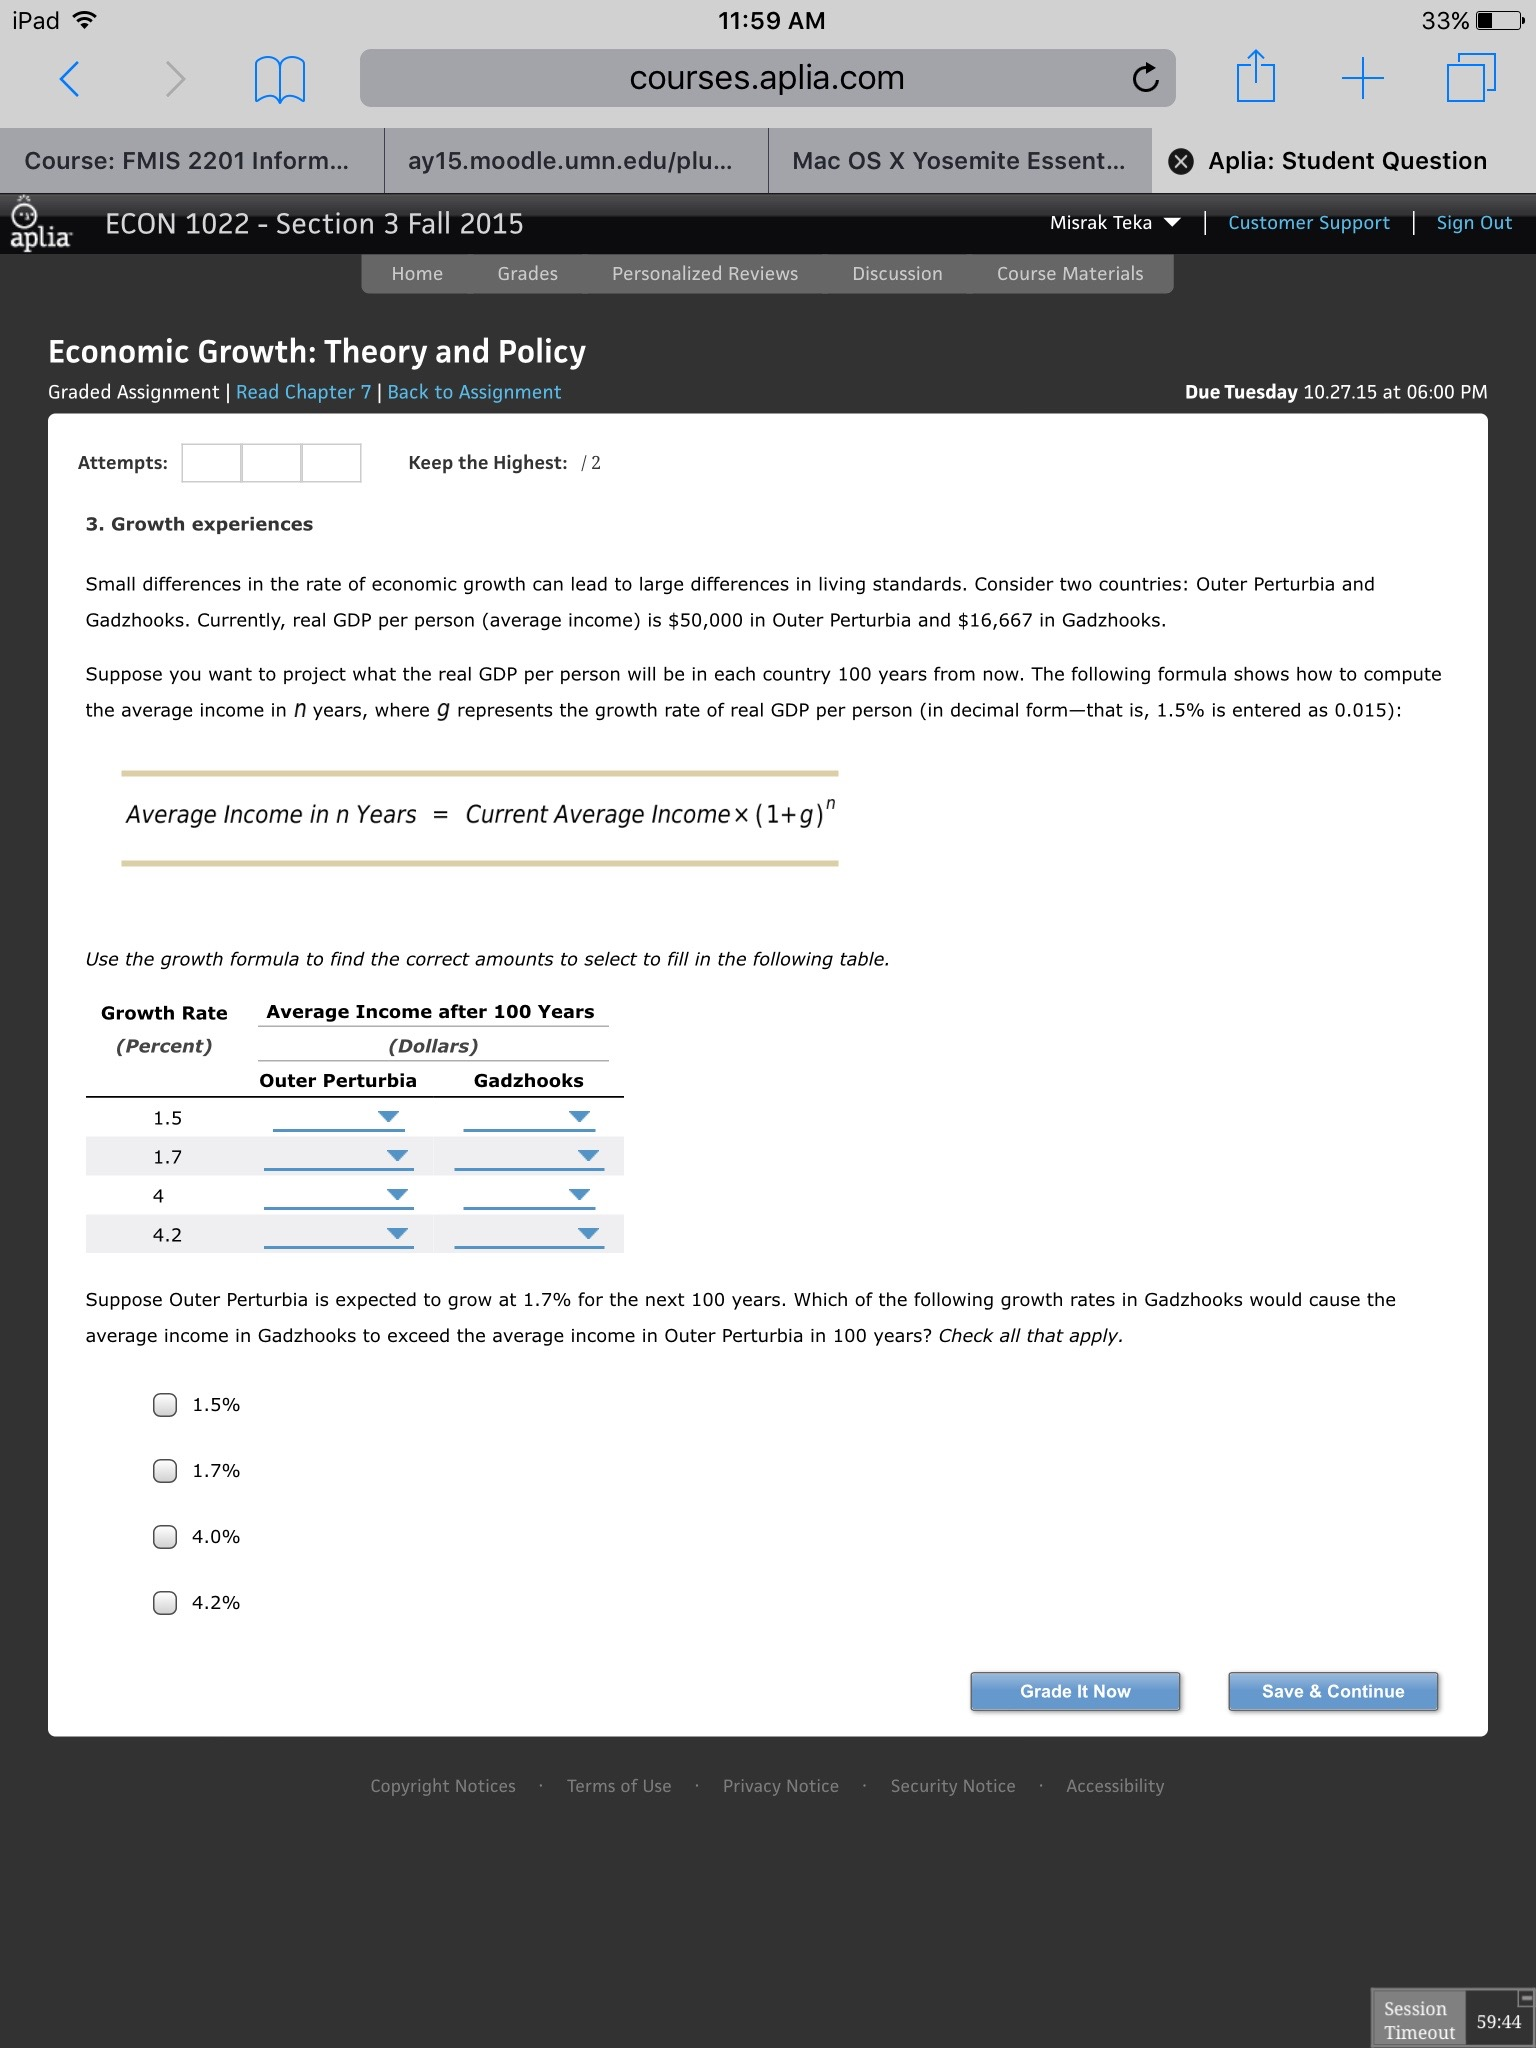 aplia assignment Using aplia assignments in mindtapdocx page 2 cengage learning internal use introduction mindtap production users can create and add assignments from the aplia homework app as distinct.